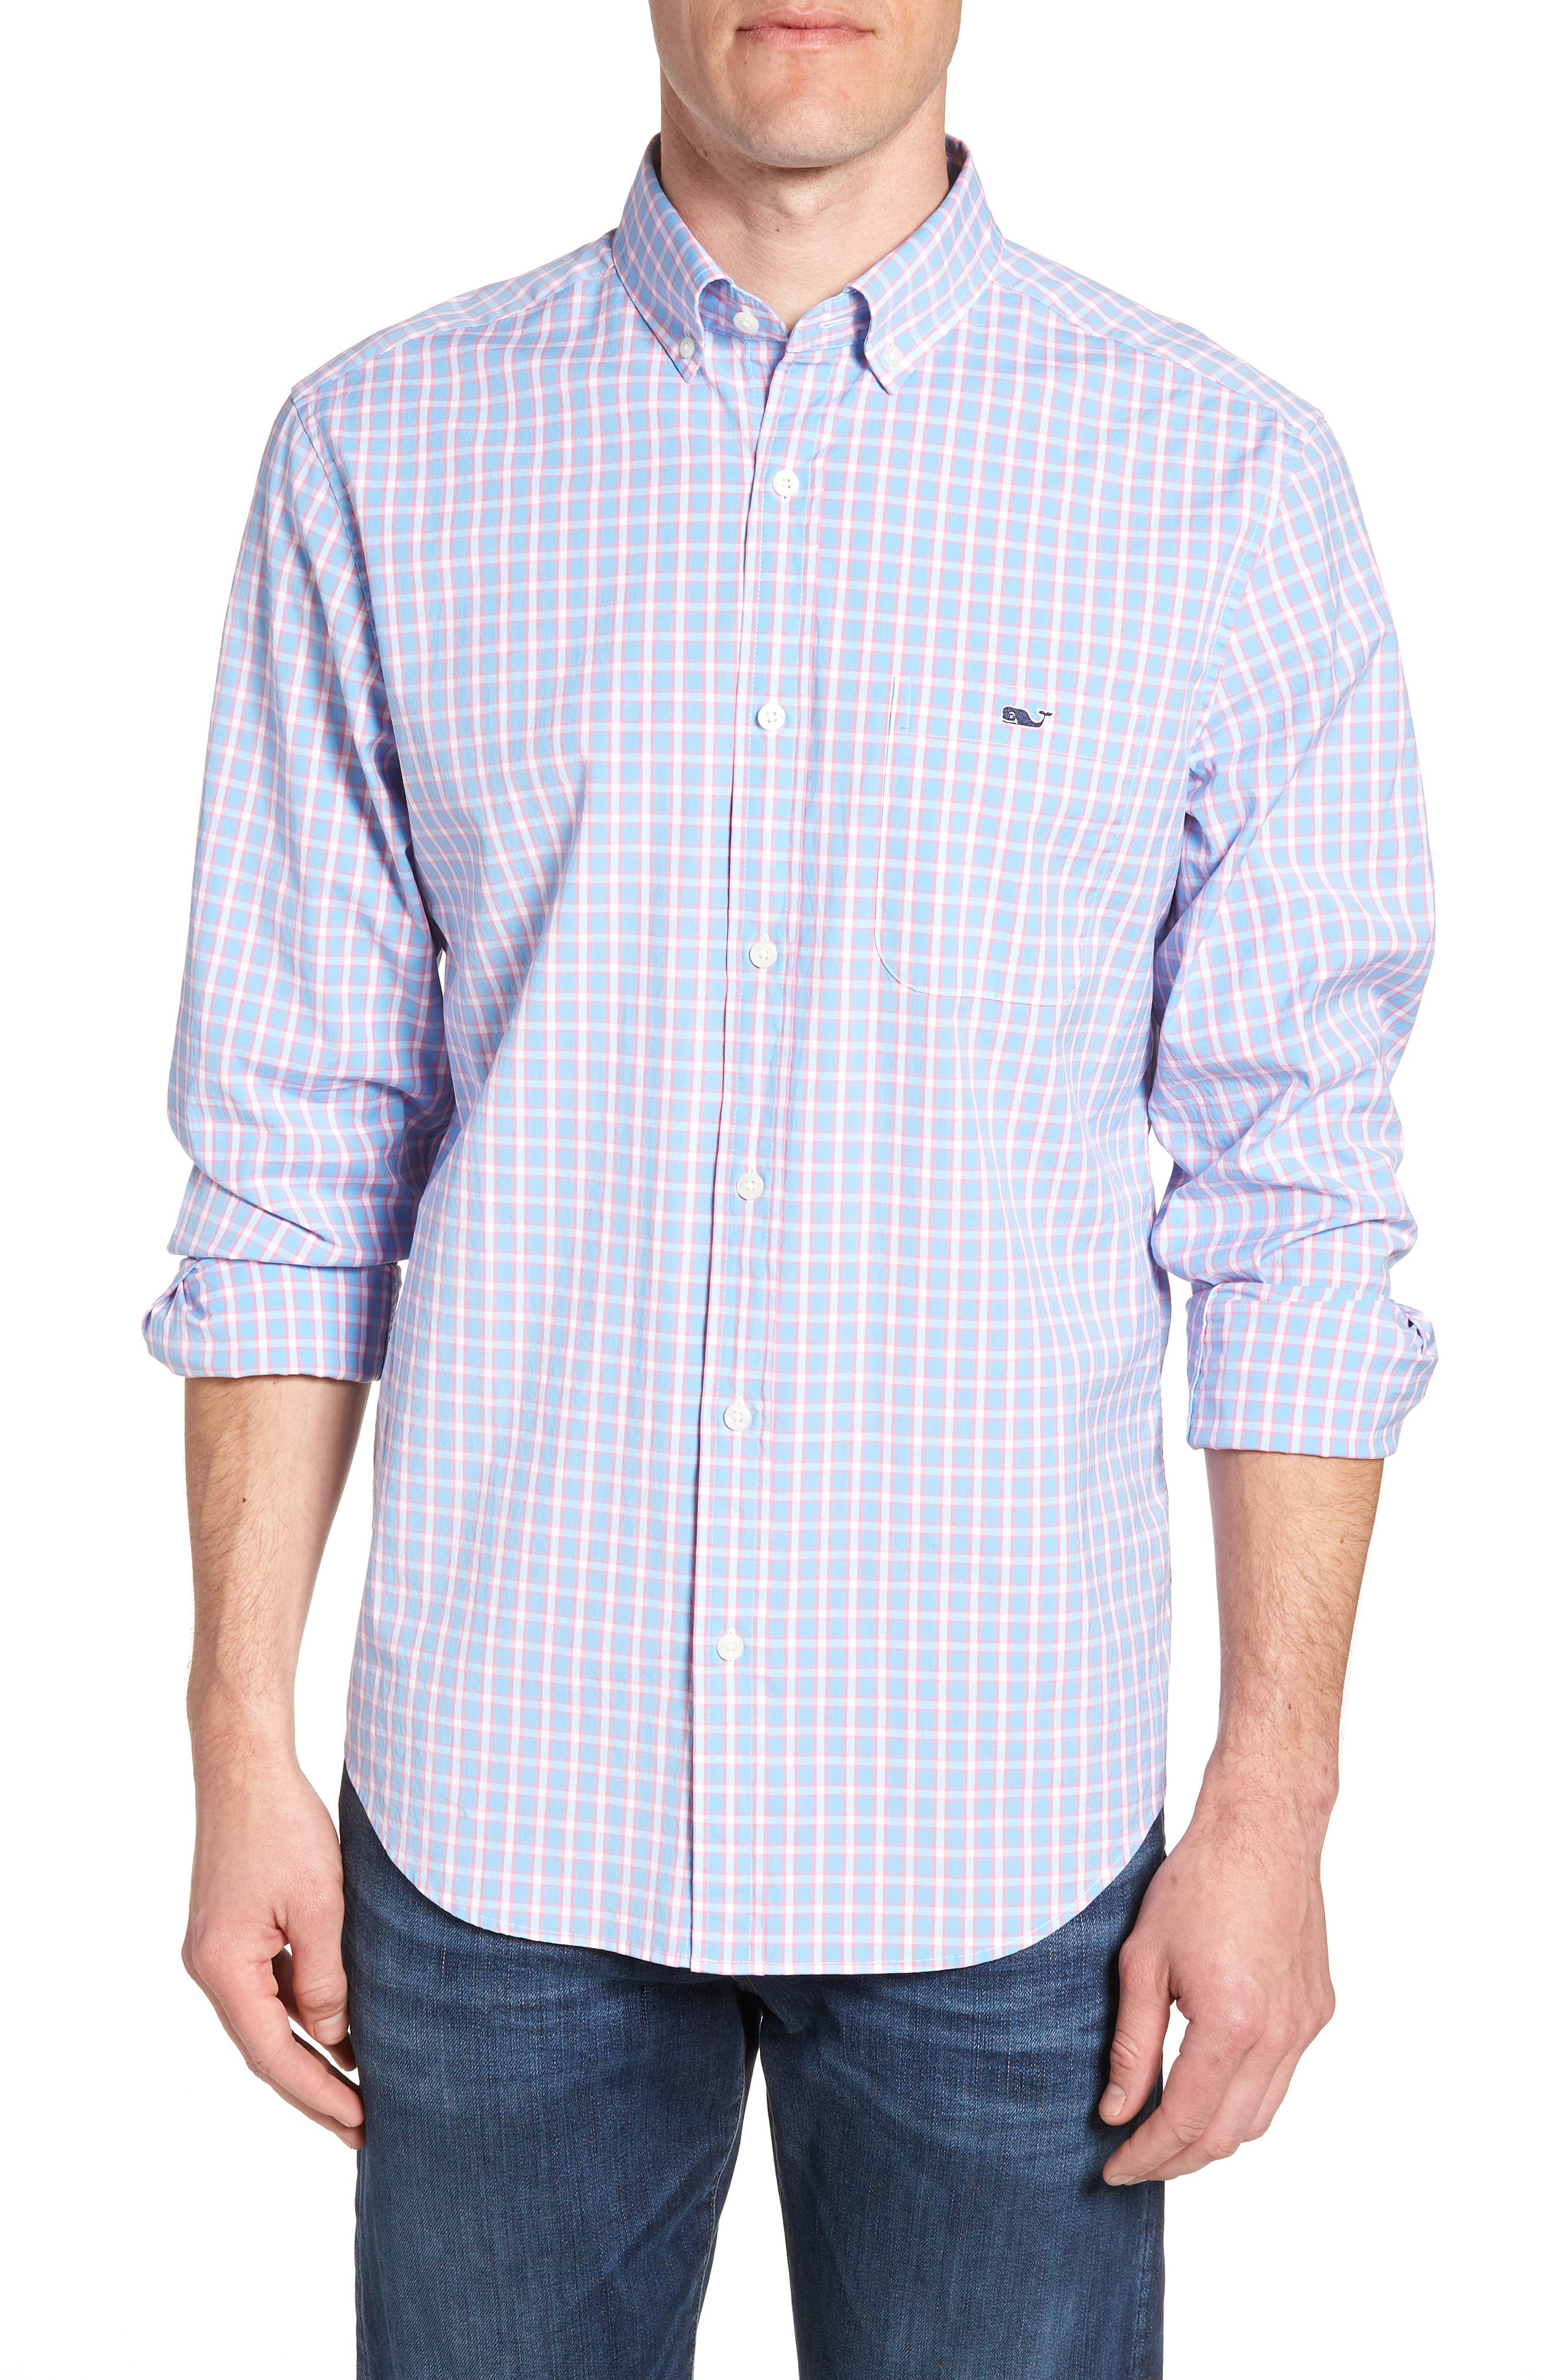 Harlock Pond Plaid Classic Fit Sport Shirt,                         Main,                         color, 484